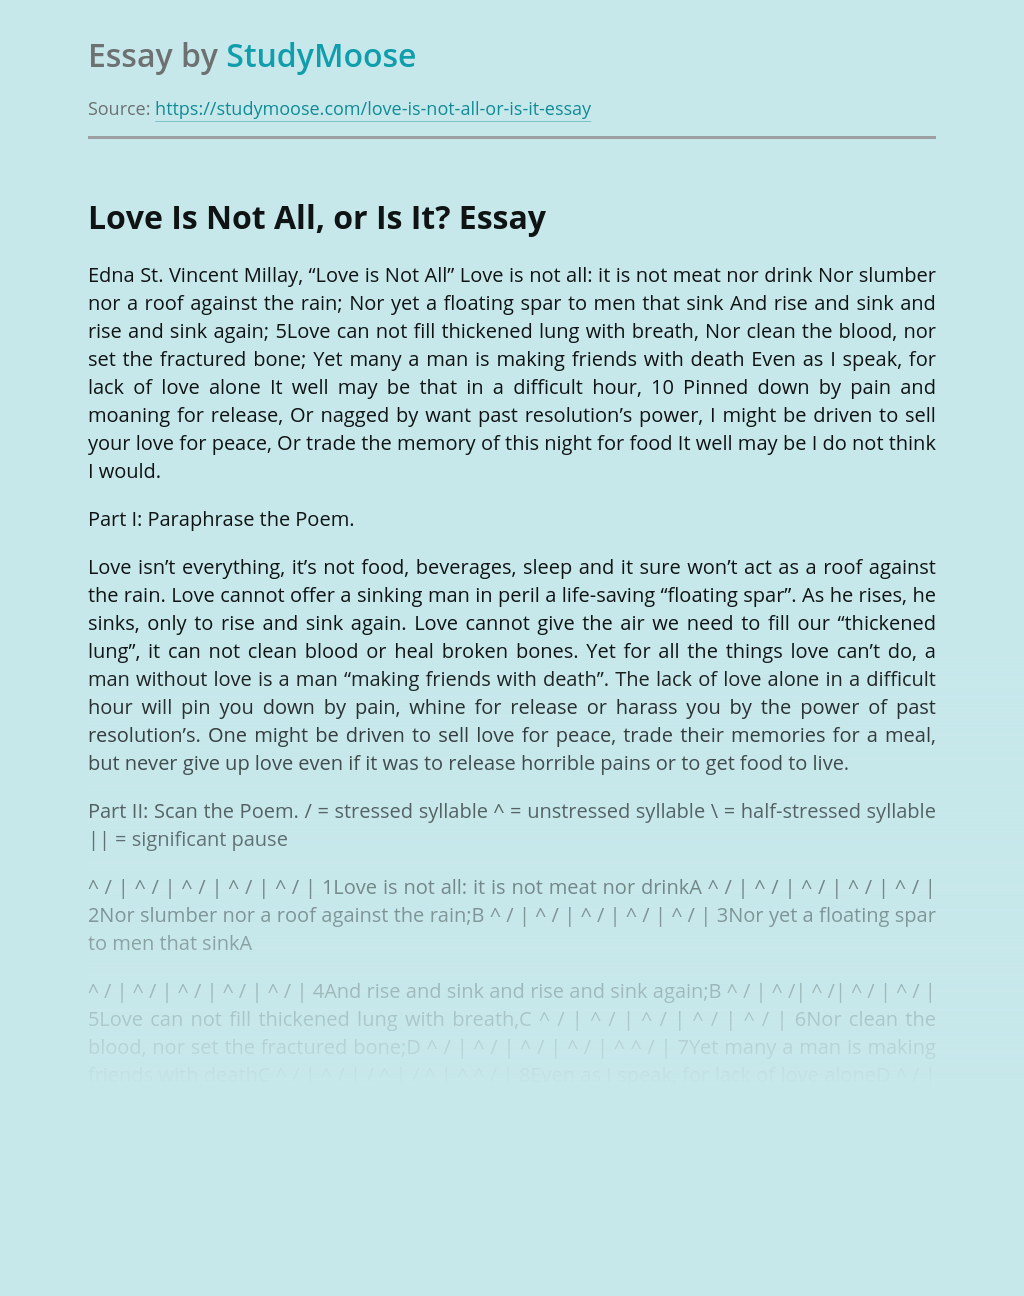 A Poem Love Is Not All, or Is It